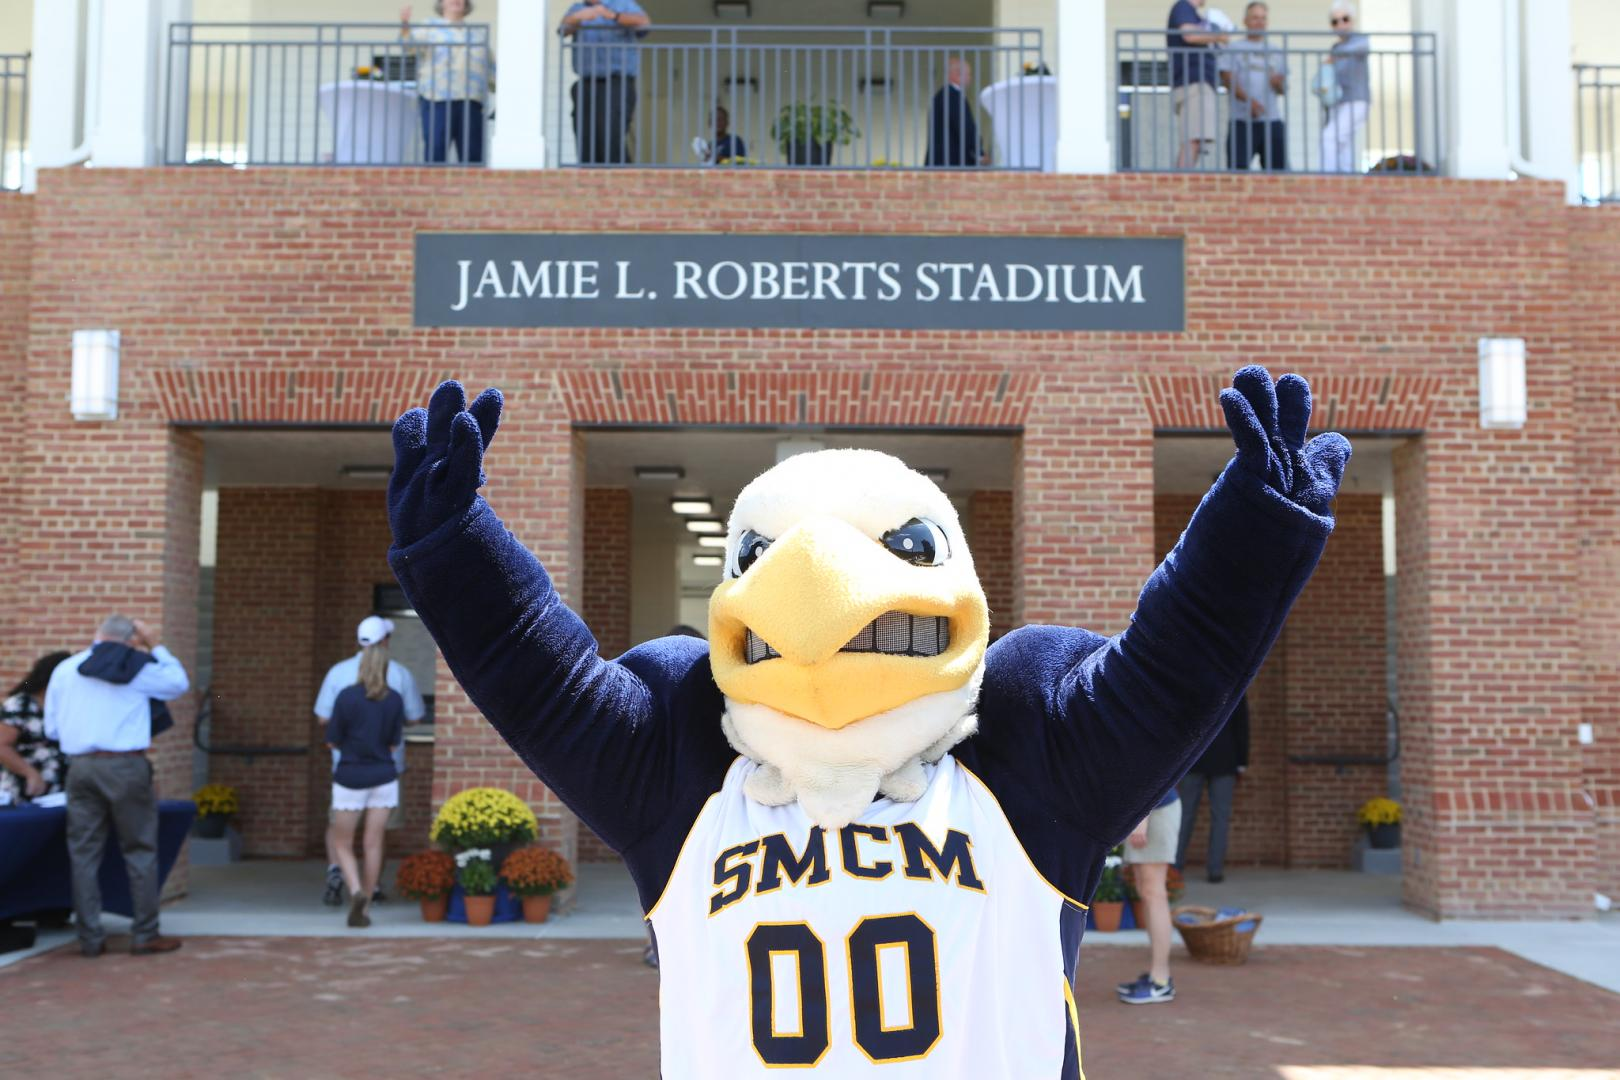 mascot Solomon the Seahawk pictured in front of the Jamie L. Roberts Stadium